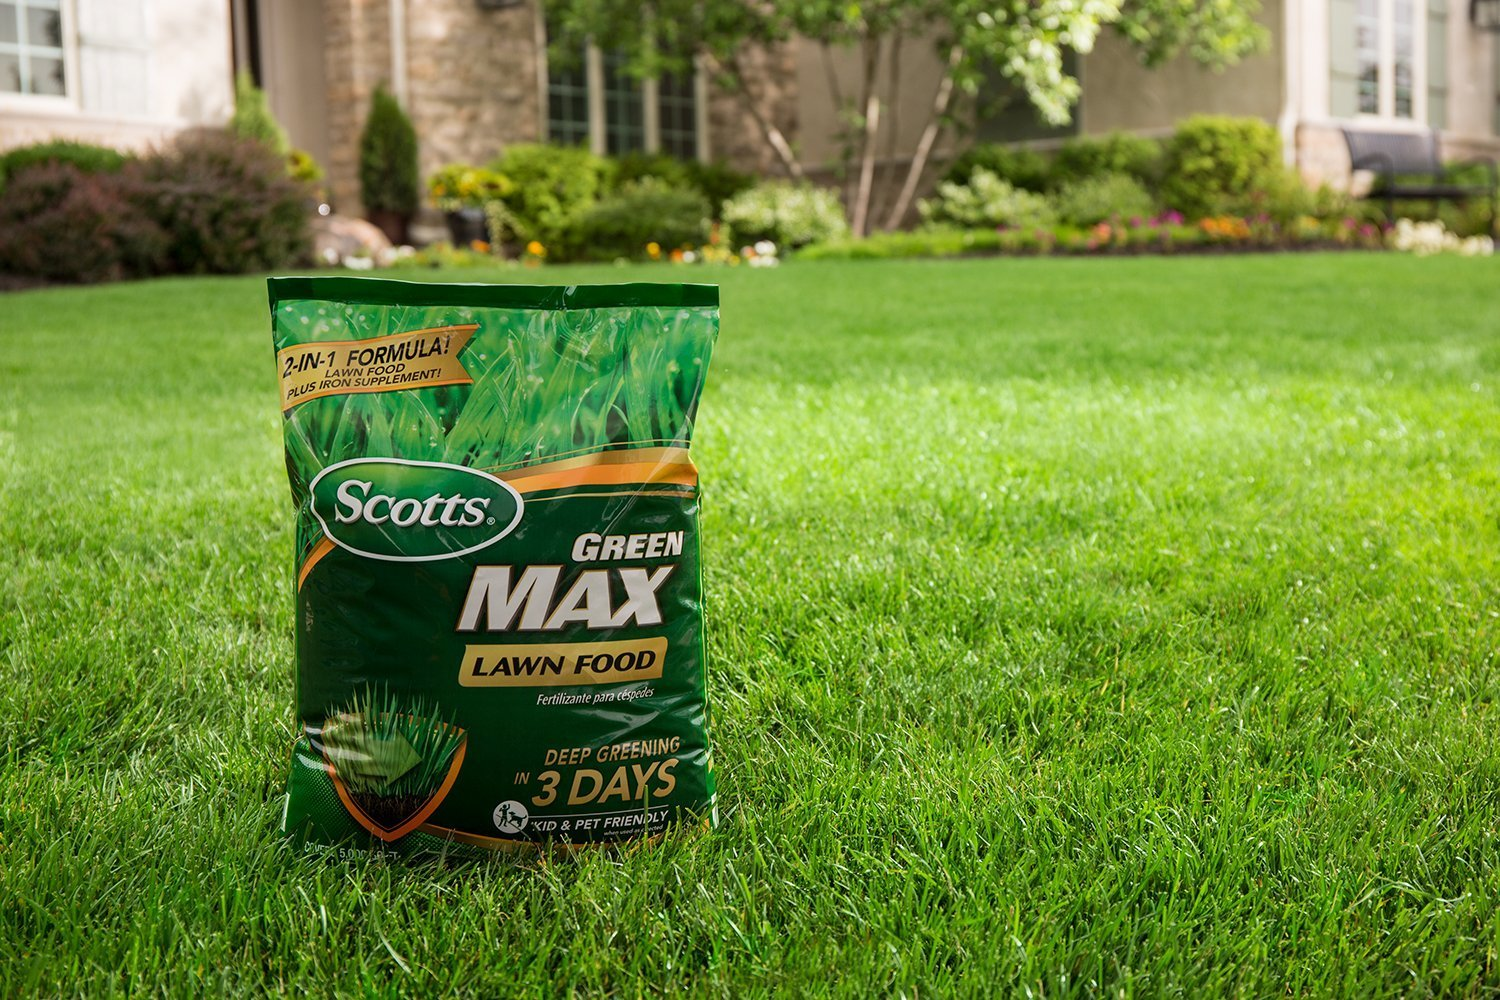 Amazon.com : Scotts Green Max Lawn Food - 10 M | Lawn Fertilizer Plus Iron Supplement | Builds Thick, Green Lawns | Deep Greening in 3 Days | 44611A ...